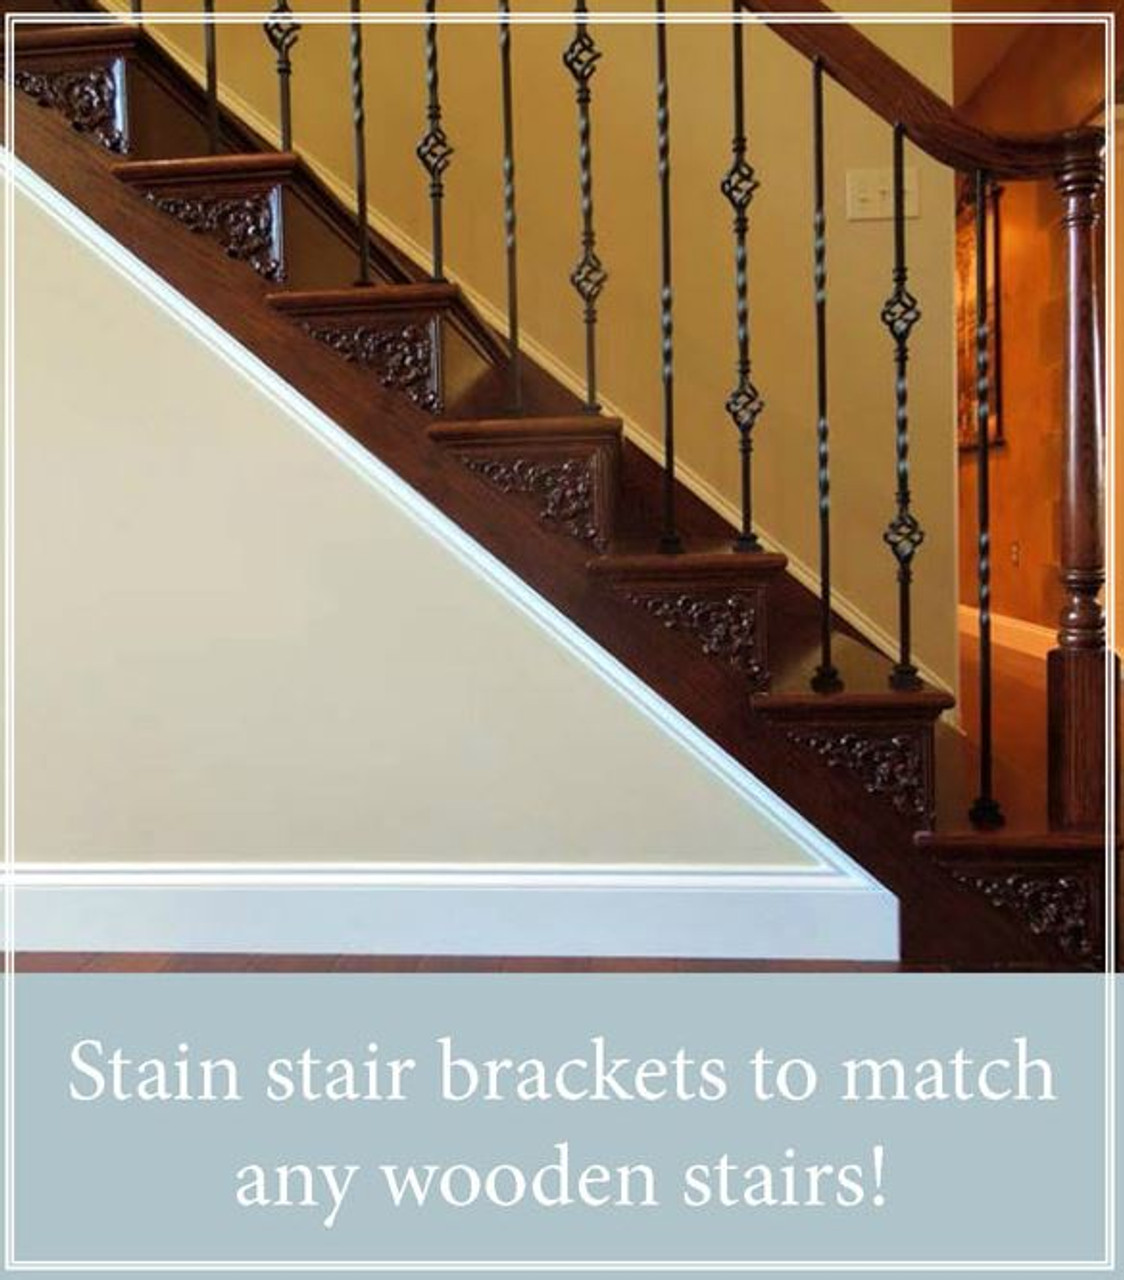 Stair Brackets can be stained or painted